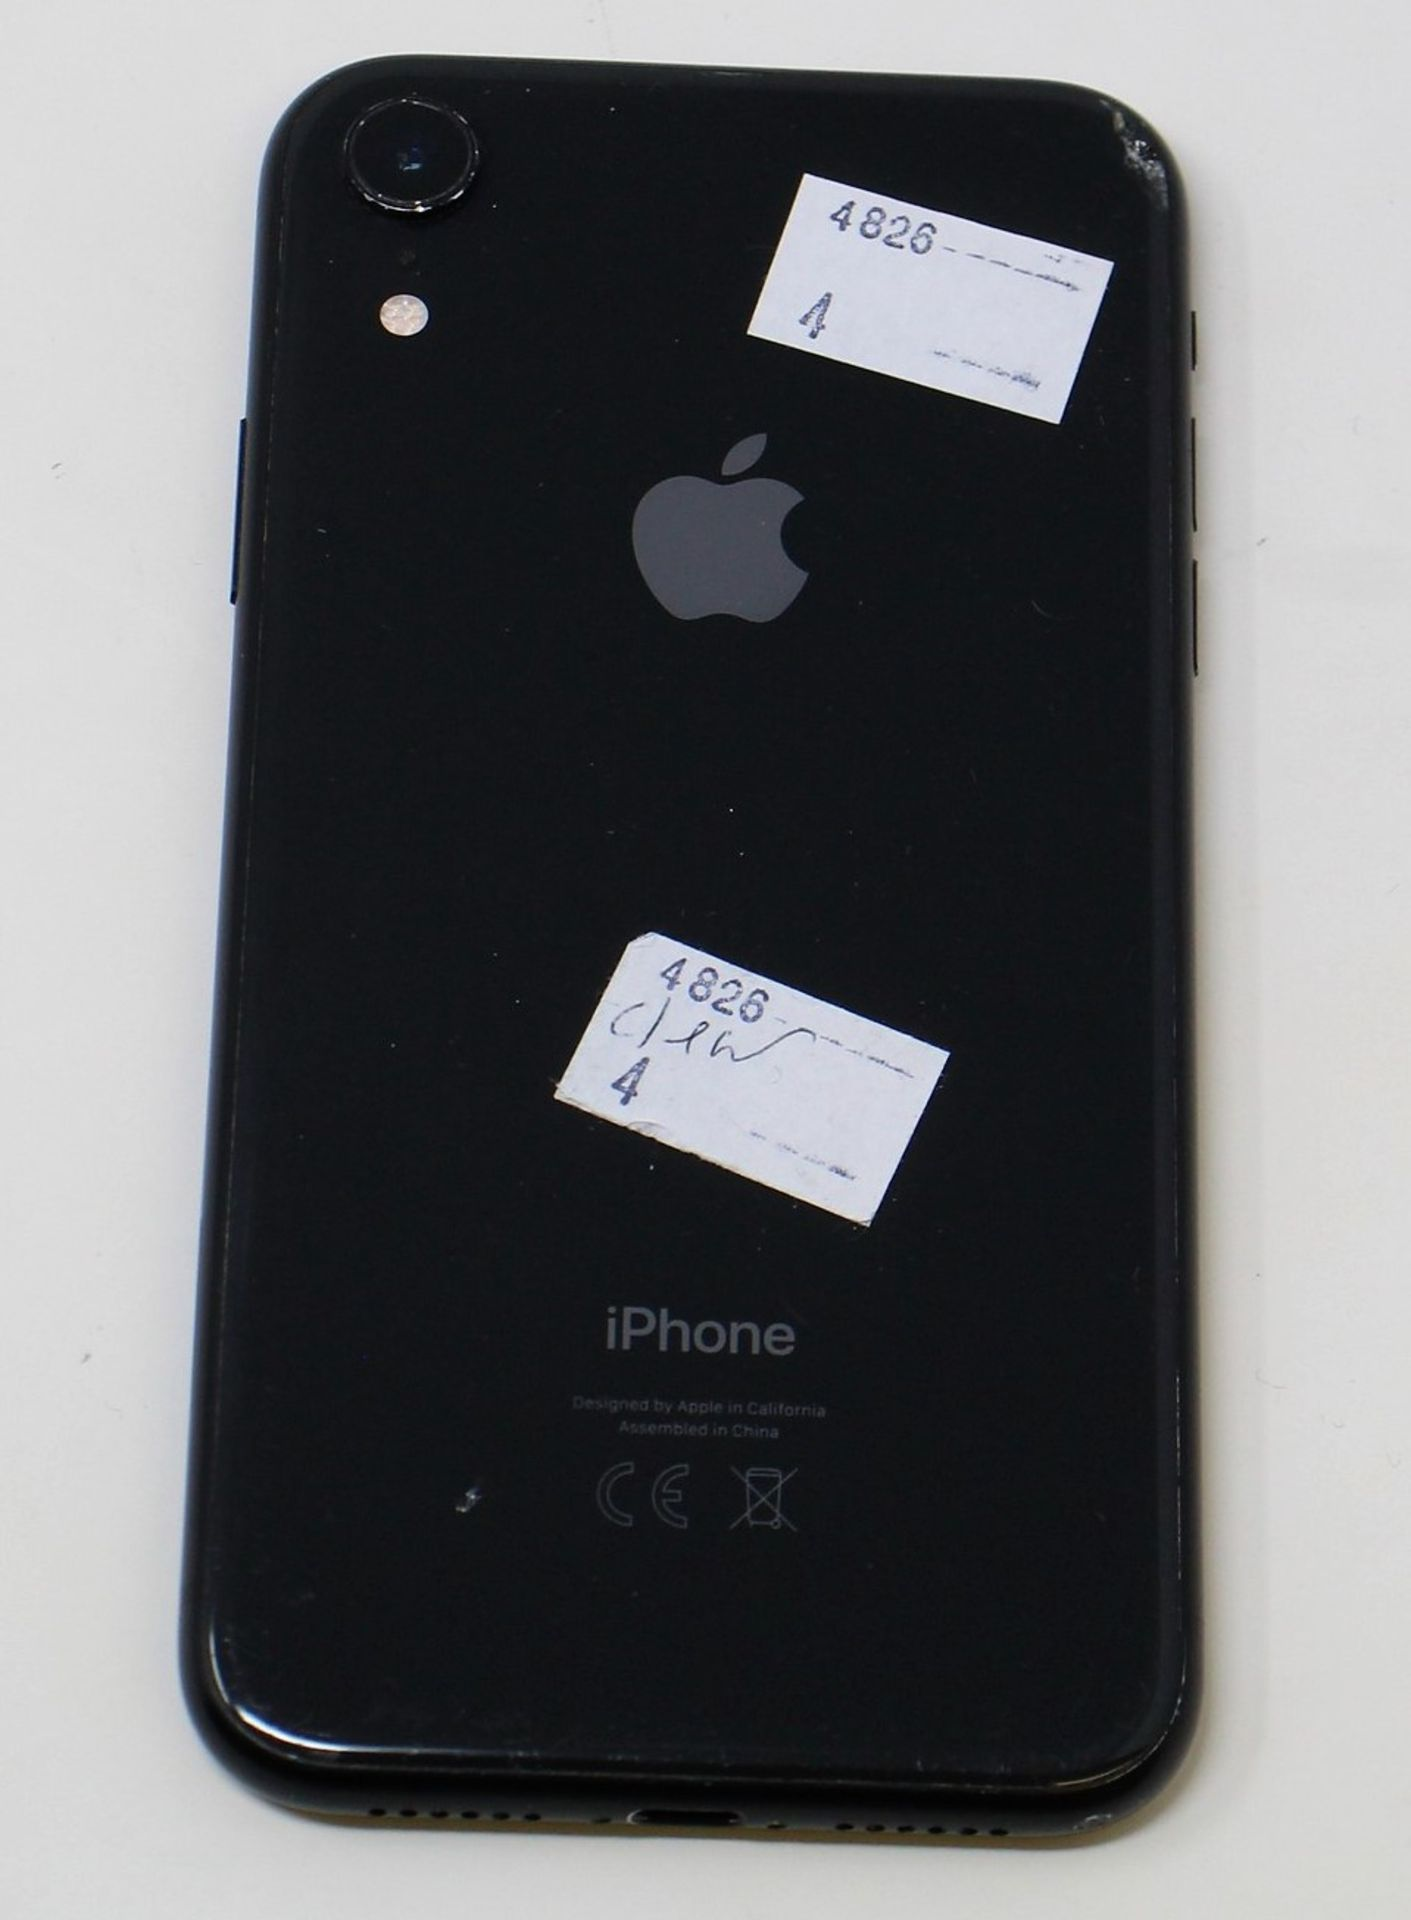 SOLD FOR PARTS: A pre-owned Apple iPhone XR (Global/A2105) 64GB in Black (iCloud Activation - Image 9 of 16